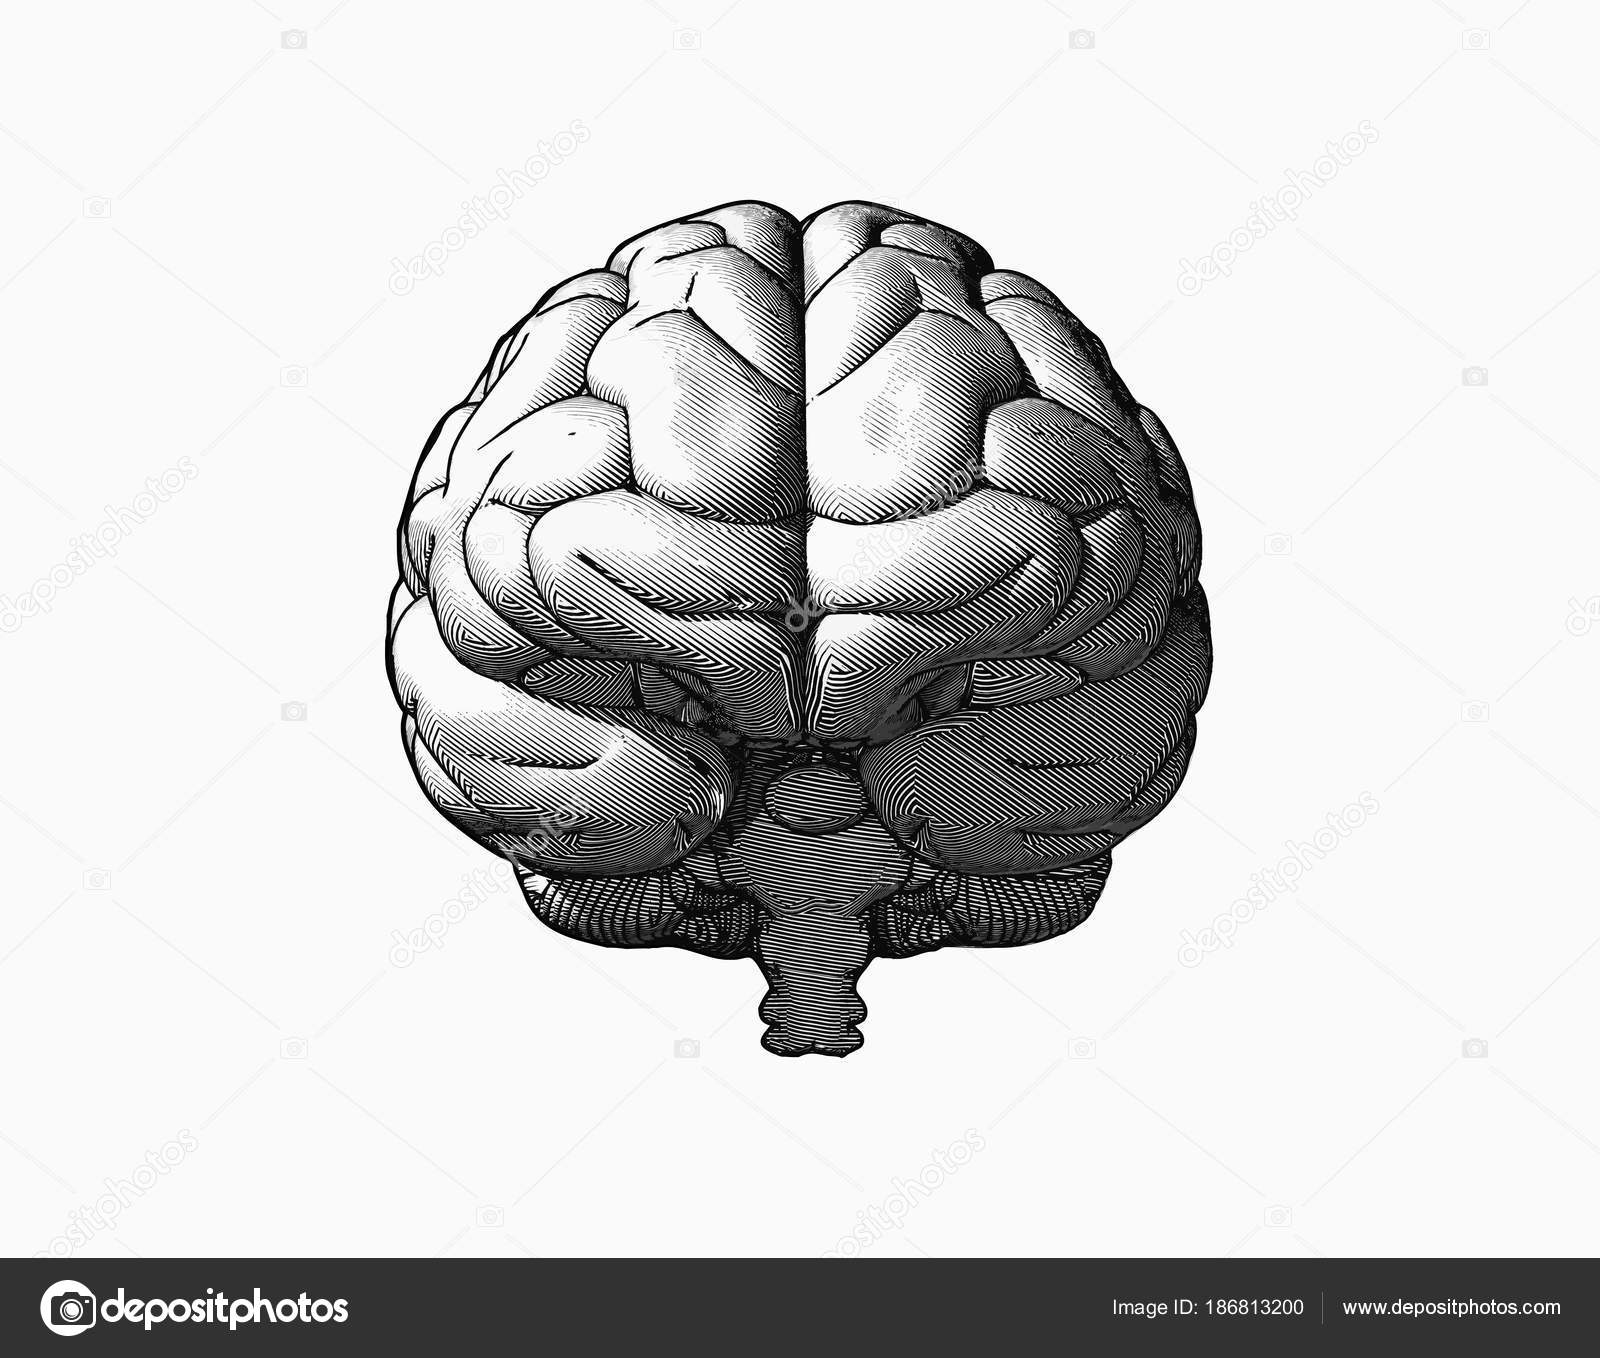 Drawings: brain simple | Brain drawing illustration in front